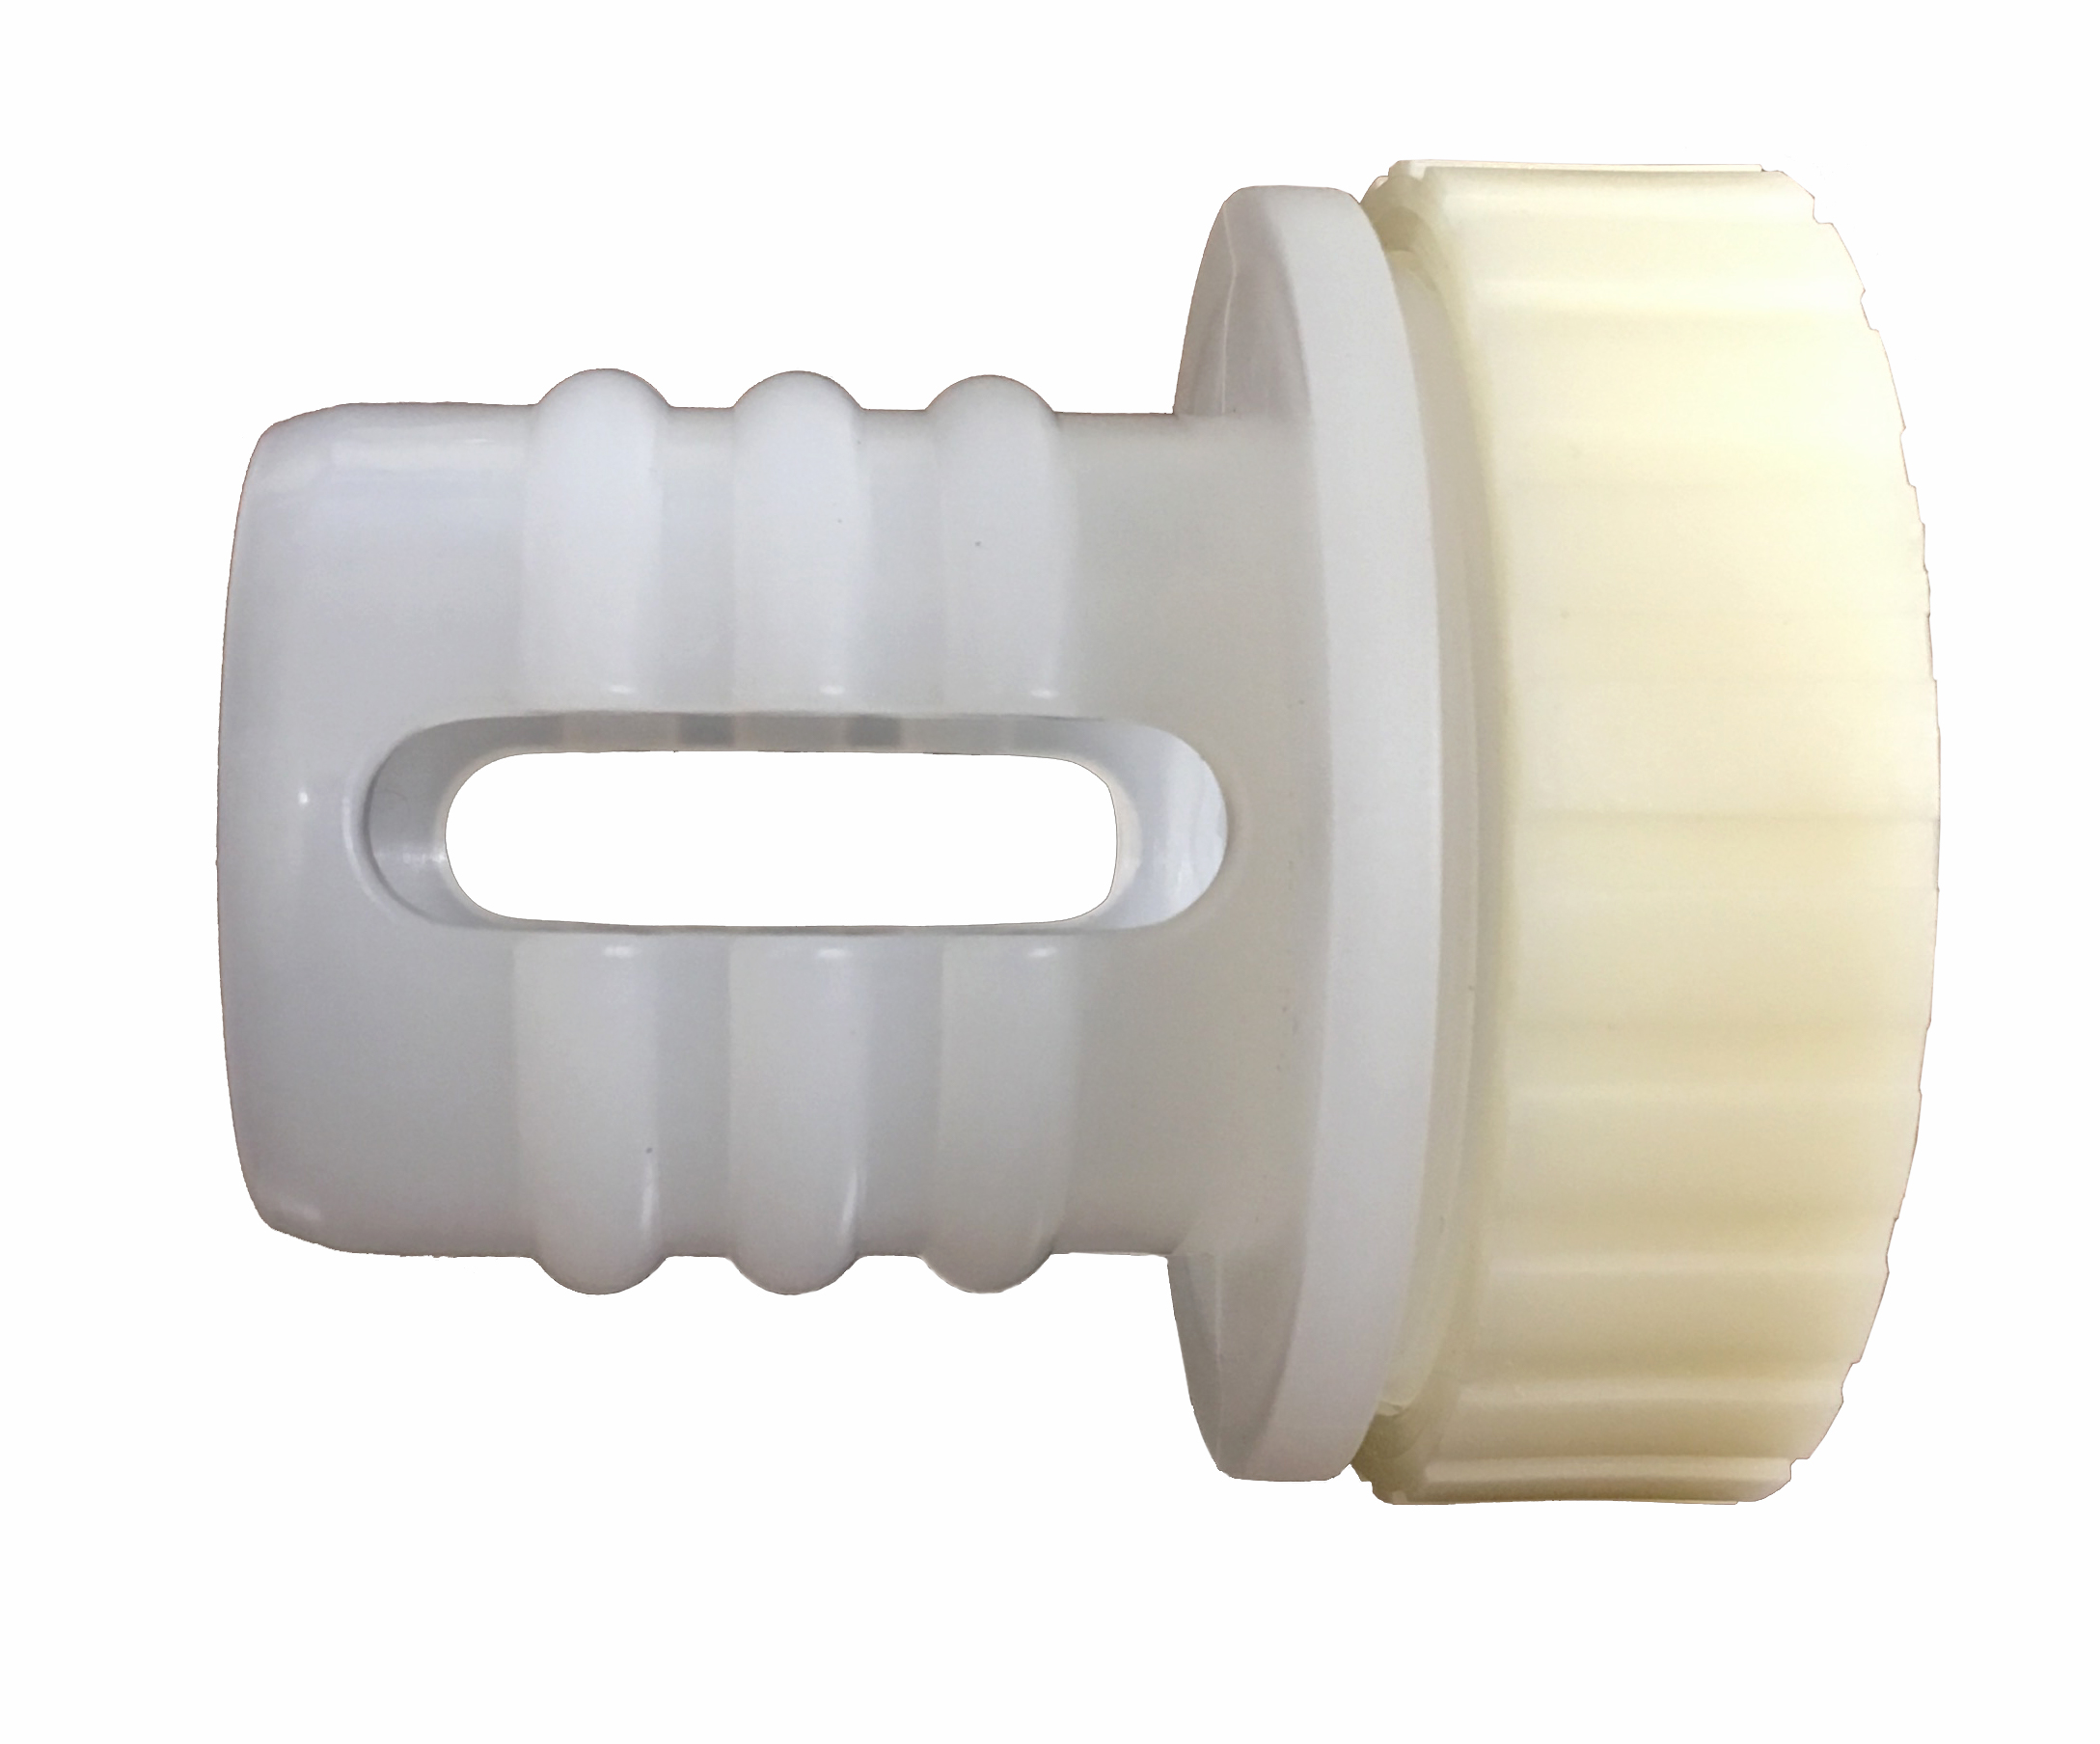 """DCPC150ADC * DIRECTCONNECT 1.5"""" CONDUIT ADAPTER FROM 1.5"""" TO 2"""" NUT COUPLER"""